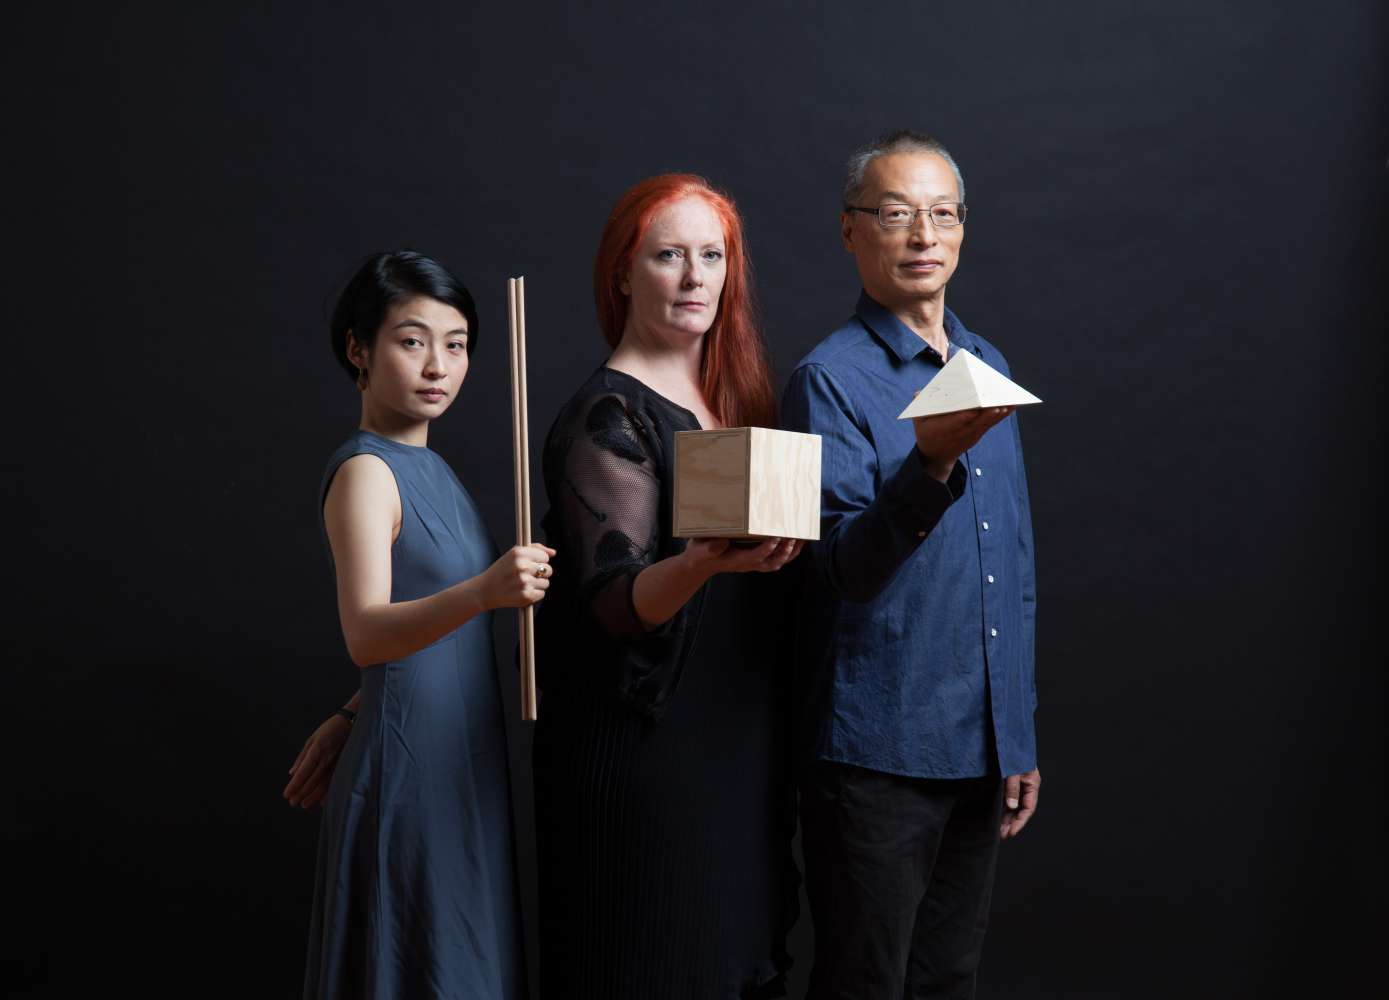 Three performers holding wooden objects standing against a black background